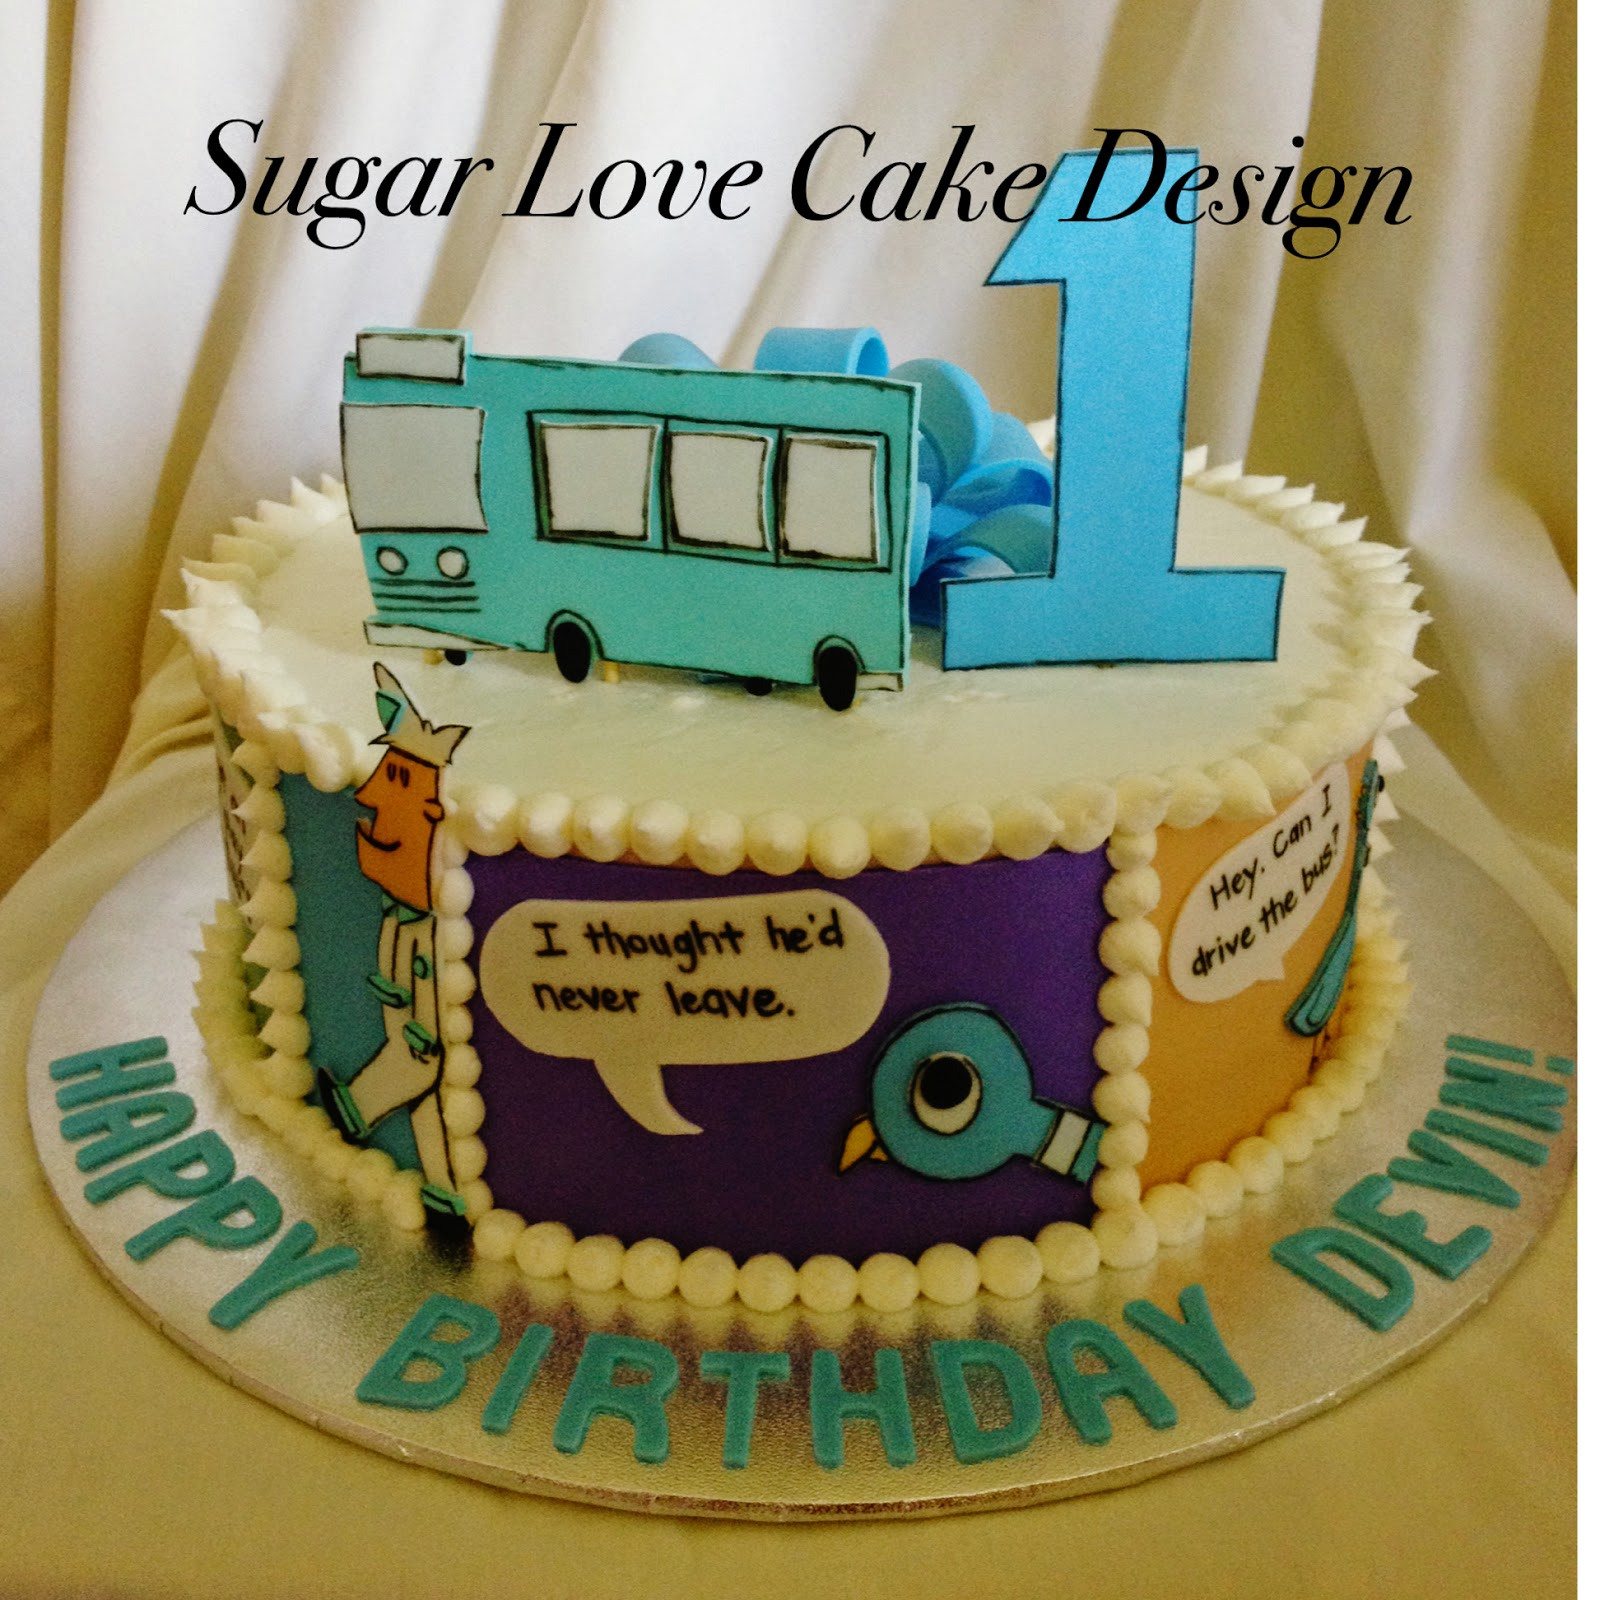 Sugar Love Cake Design: Birthday Cakes